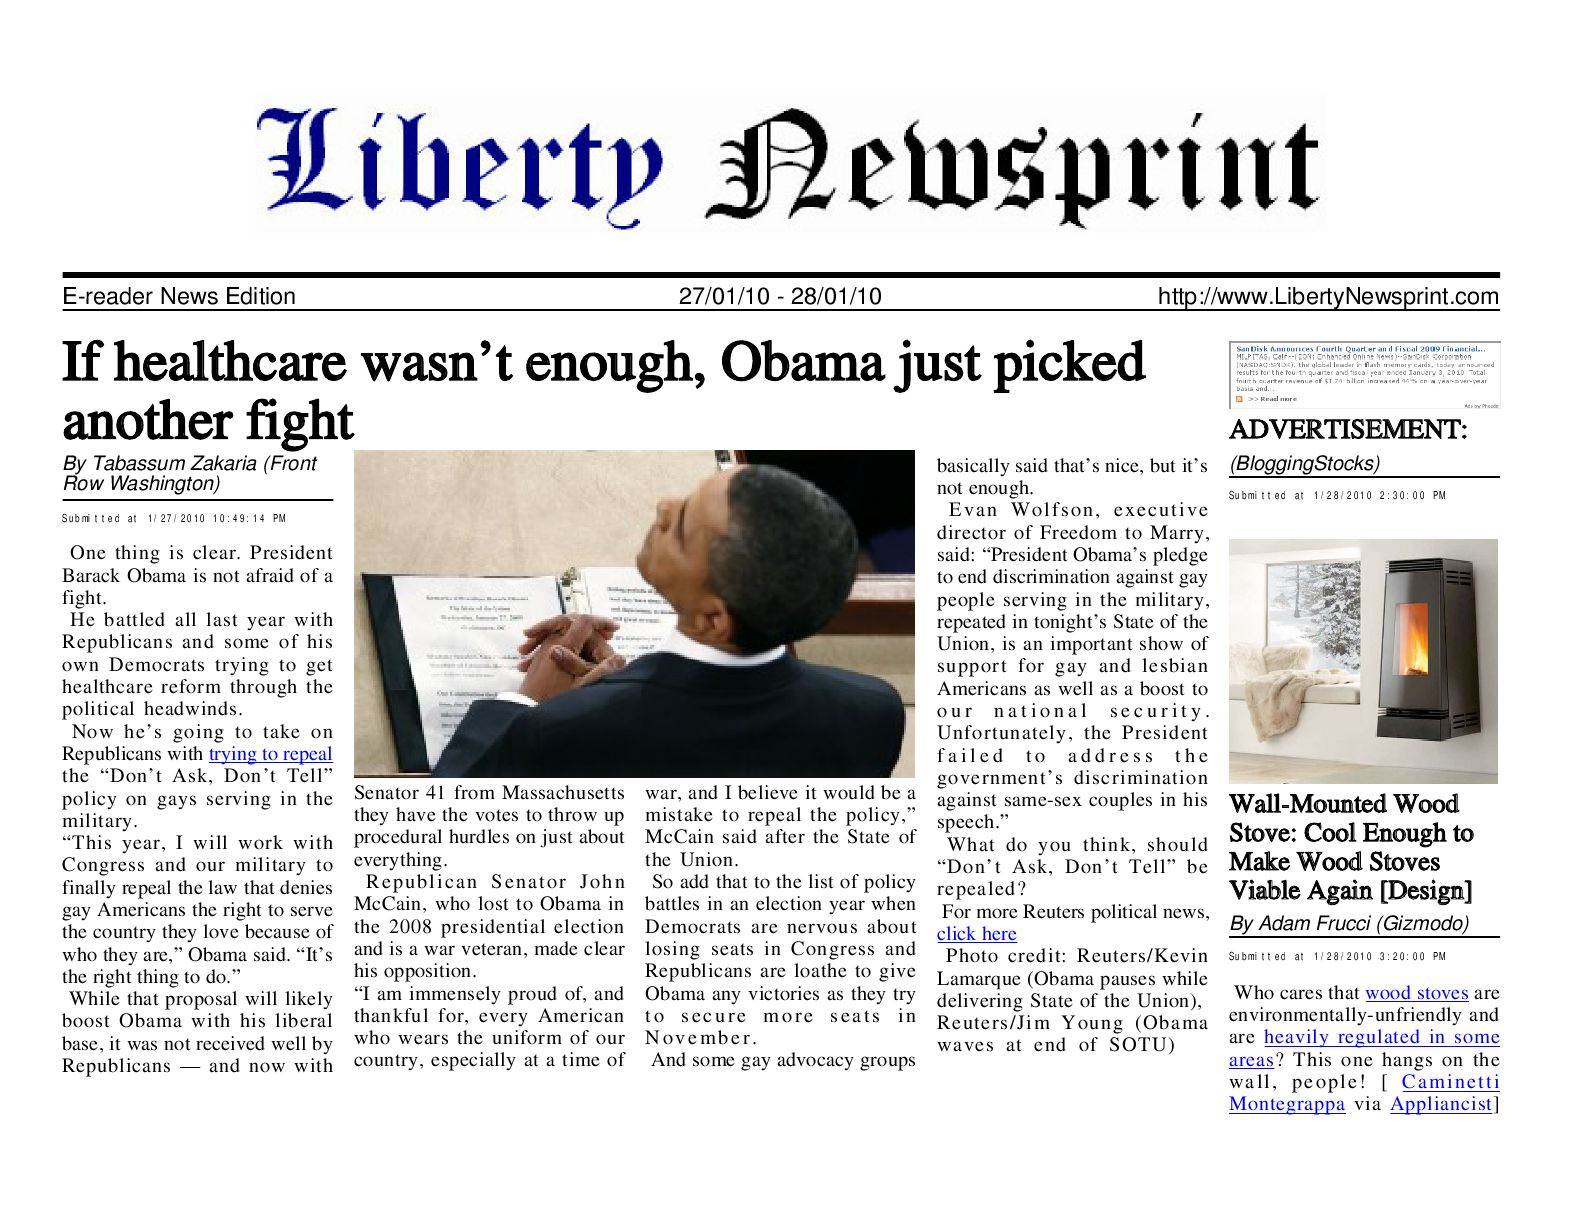 Liberty newsprint jan 28 10 by liberty newspost issuu fandeluxe Image collections